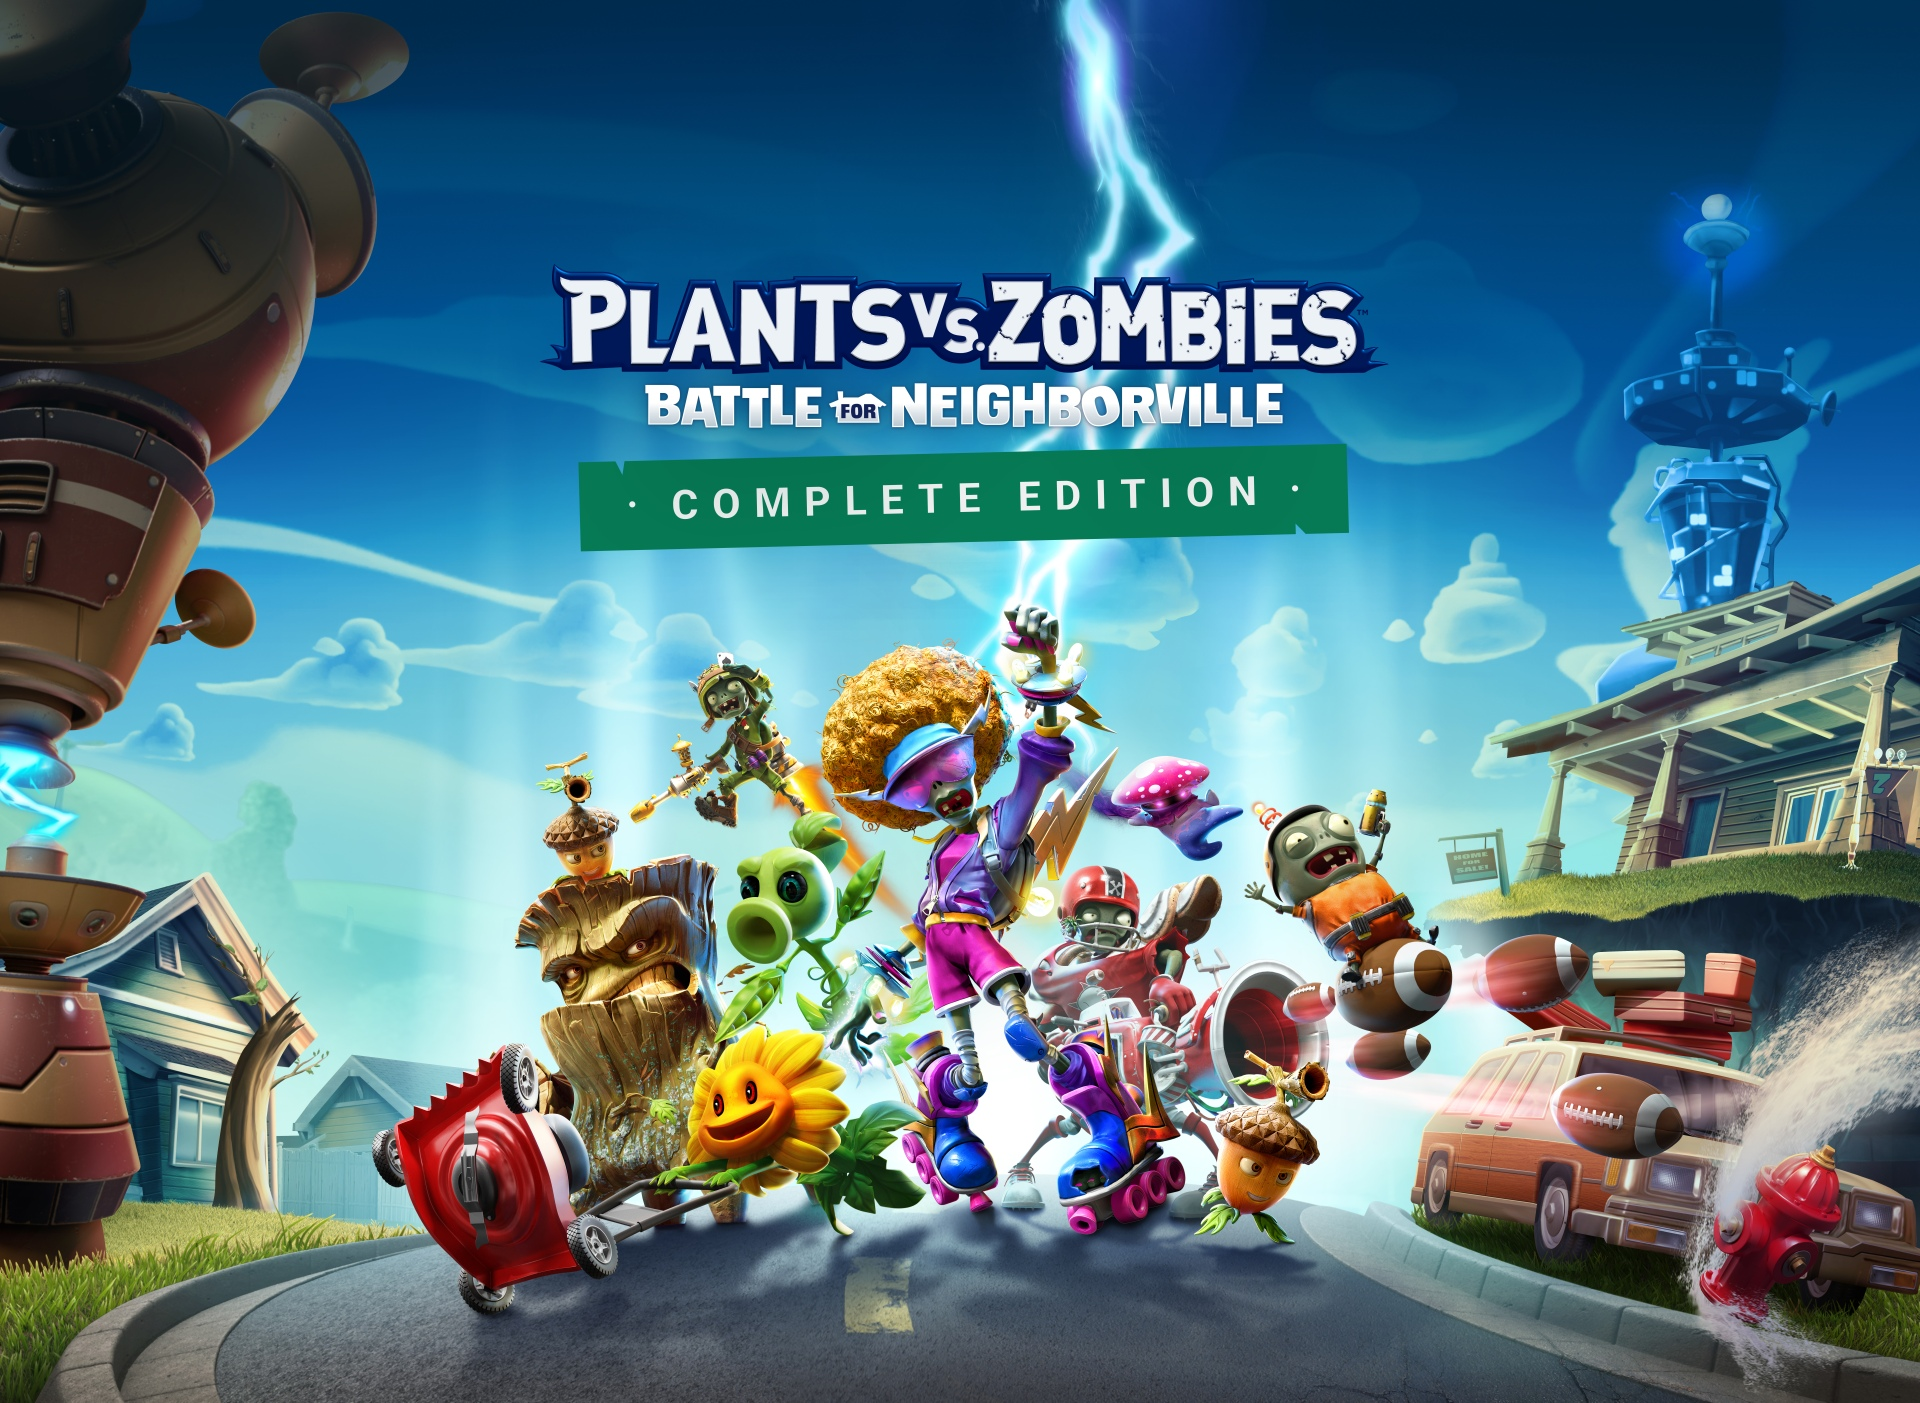 PLANTS VS. ZOMBIES: BATTLE FOR NEIGHBORVILLE SU NINTENDO SWITCH